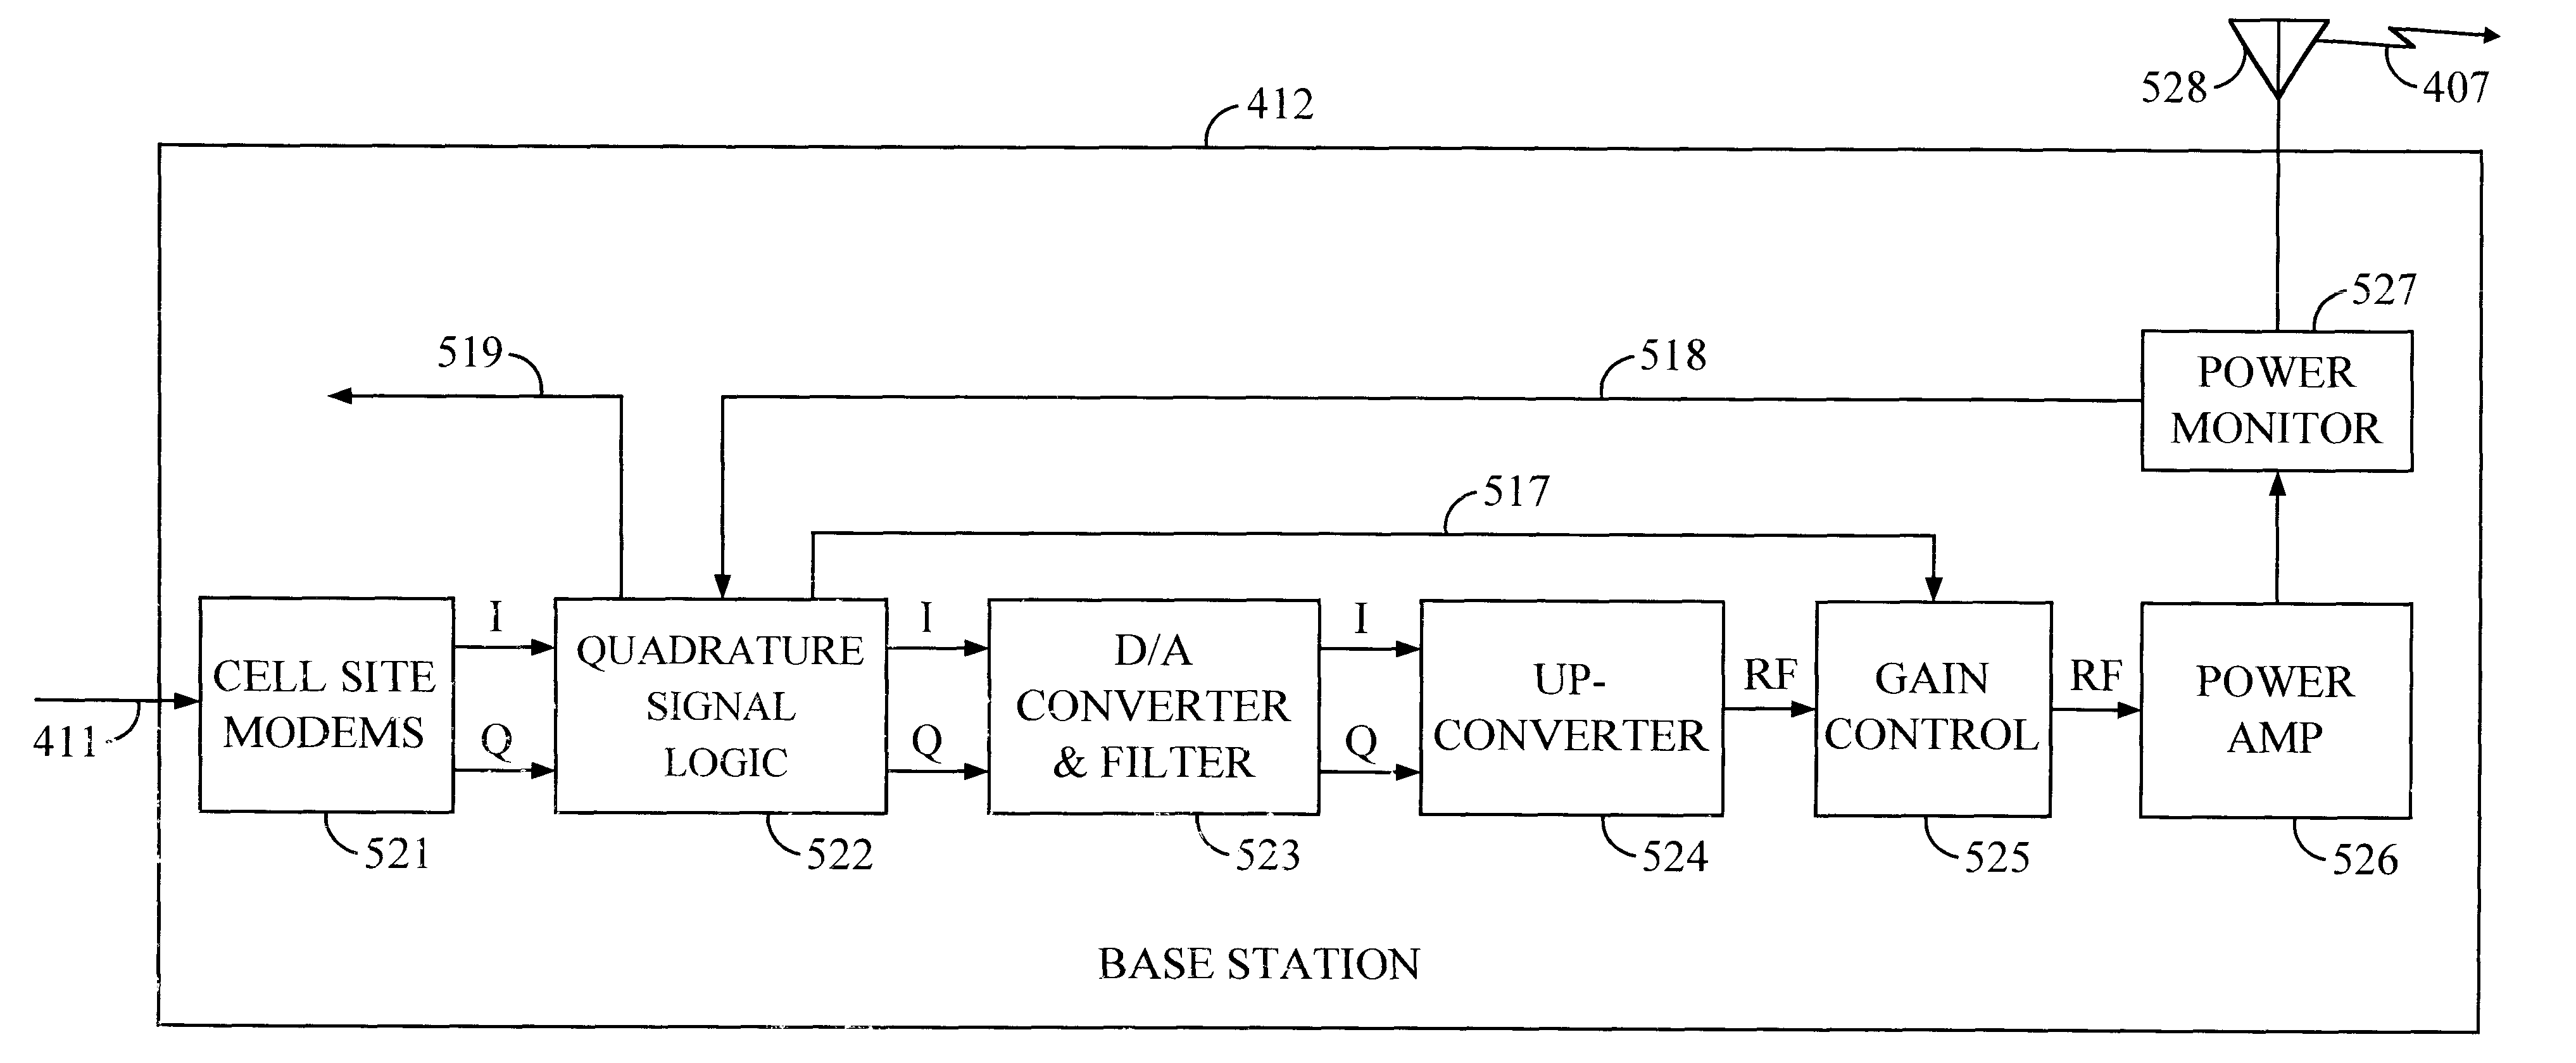 power control in cdma thesis In this thesis, combined power and rate adaptations in the reverse channel of a multicell cdma cellular system over a nakag ami-lognormal frequency selective fading channel are considered imperfect power control, user traffic distribution, intracell interference, co -channel interference, a rake receiver and spatial diversity are also considered.